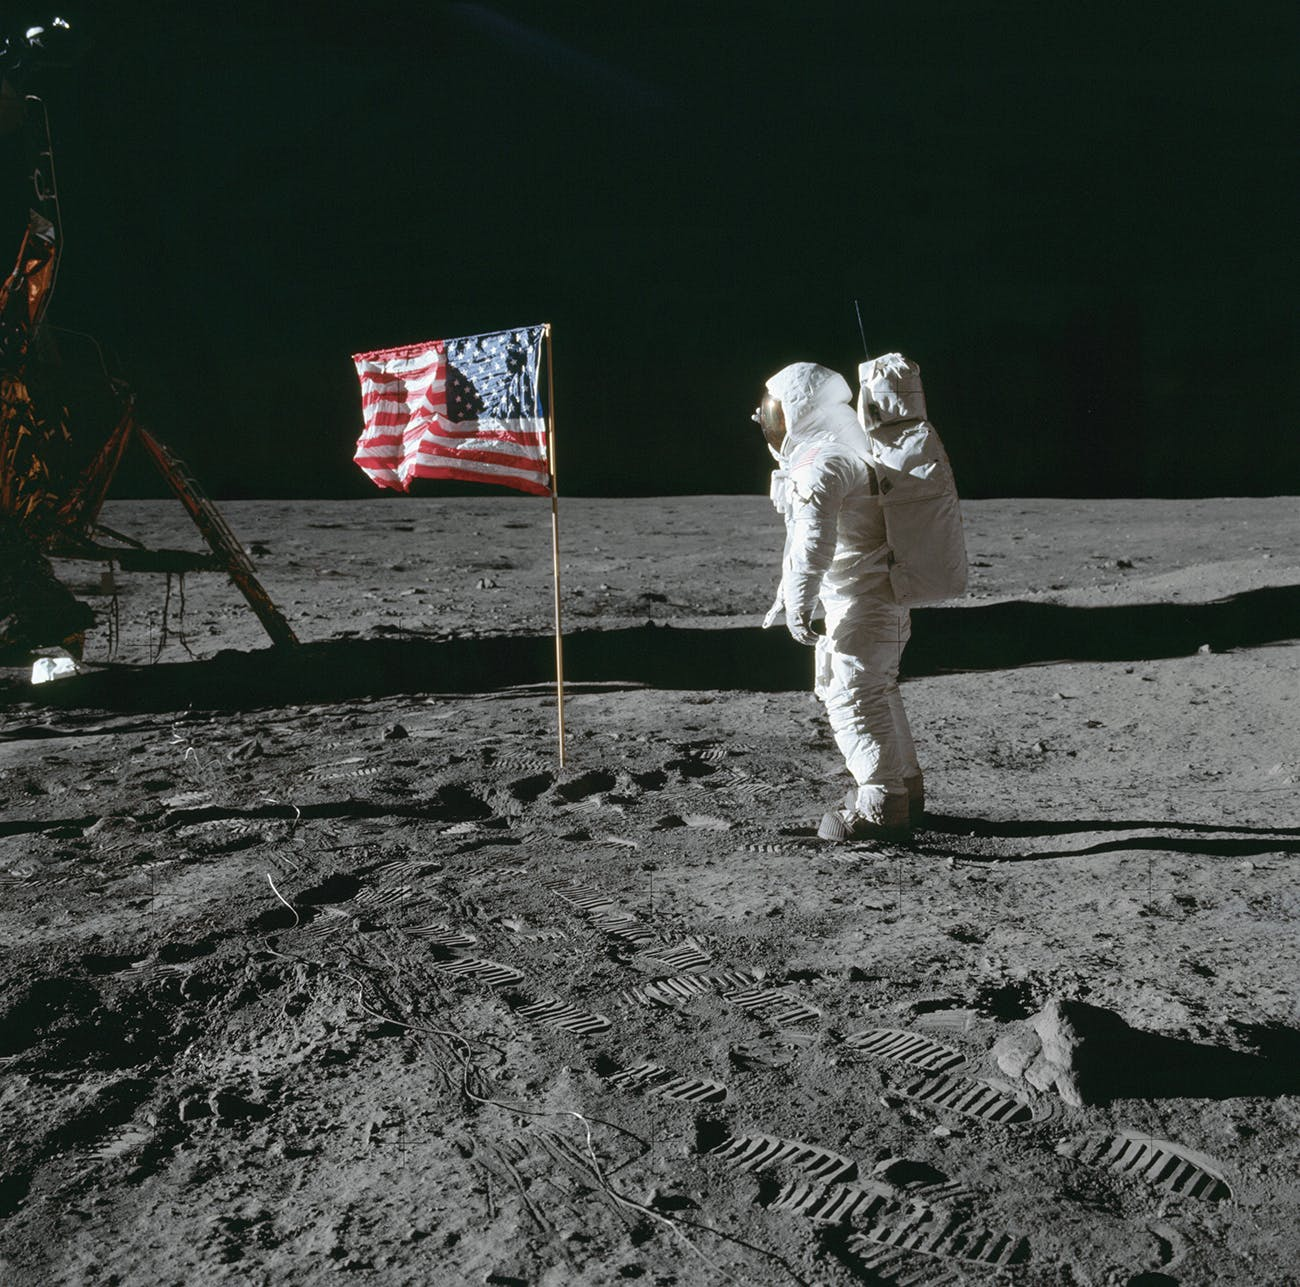 Astronaut Edwin E. Aldrin Jr., lunar module pilot of the first lunar landing mission, poses for a photograph beside the deployed U.S. flag during Apollo 11 extravehicular activity on the lunar surface on July 20, 1969.